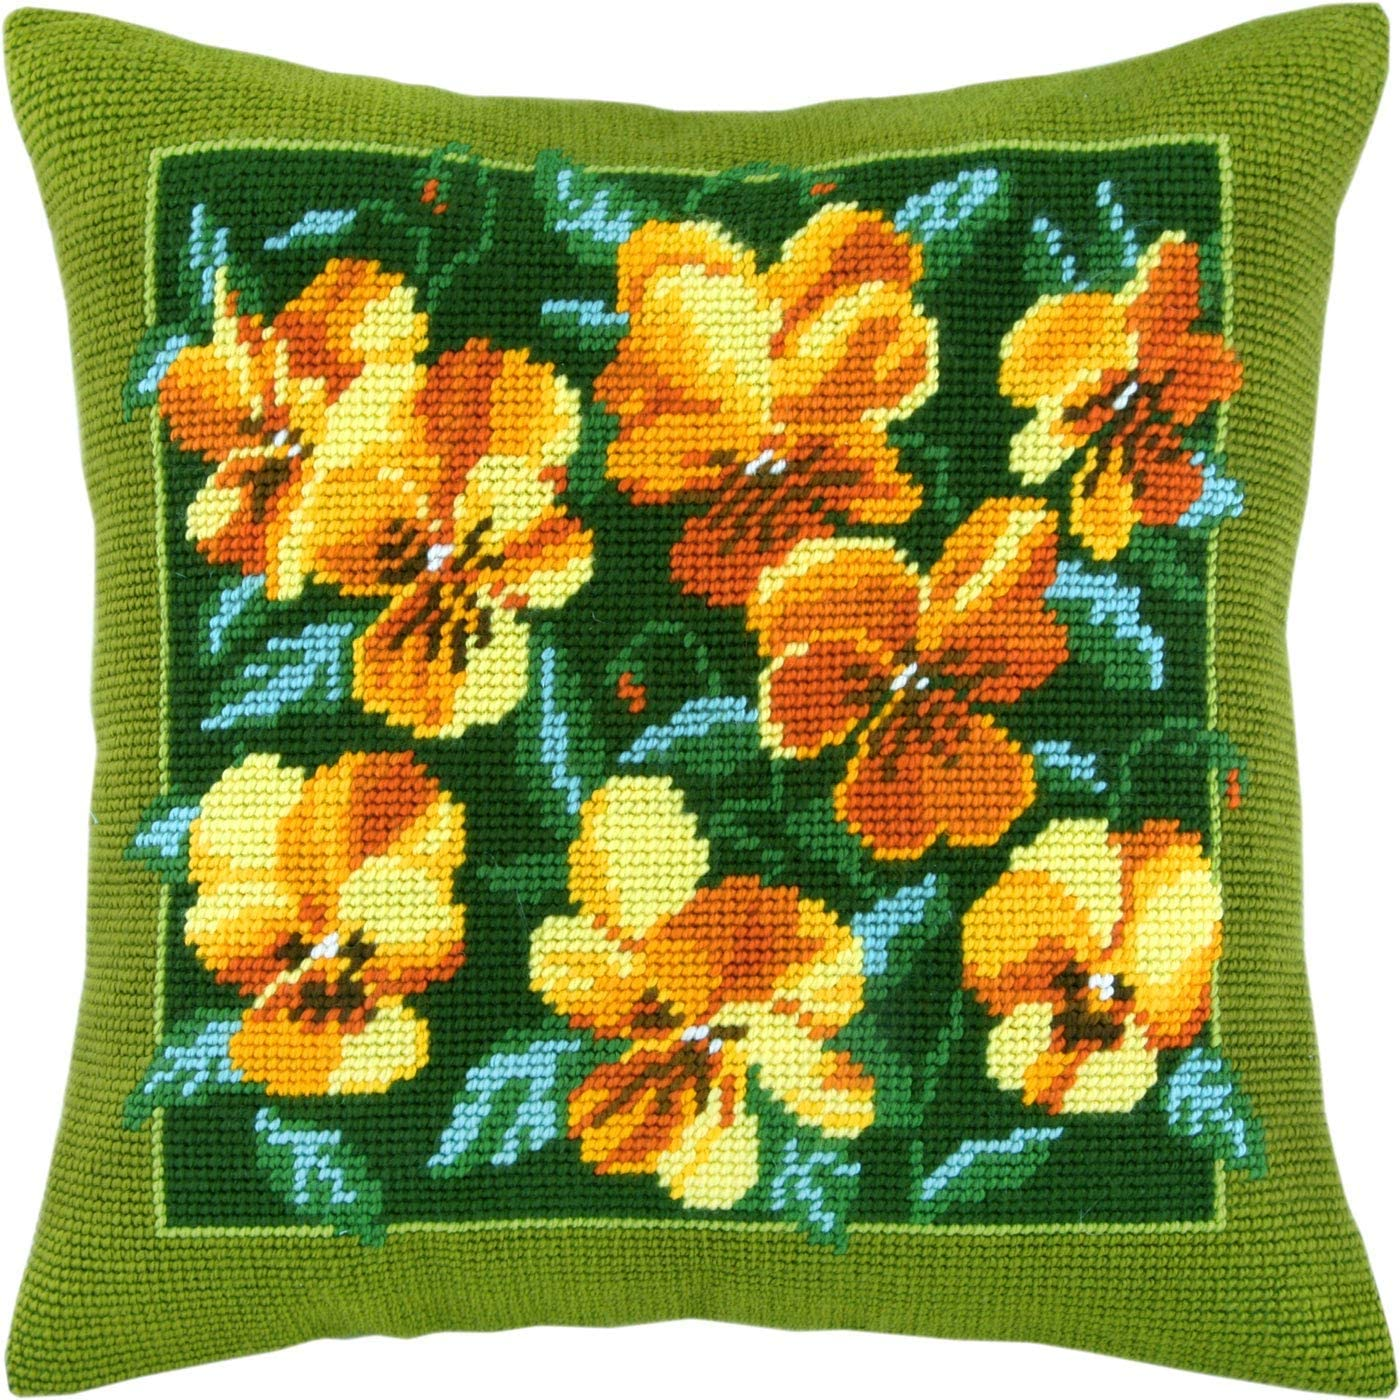 Golden Bouquet Throw Pillow 16/×16 Inches Printed Tapestry Canvas European Quality Needlepoint Kit